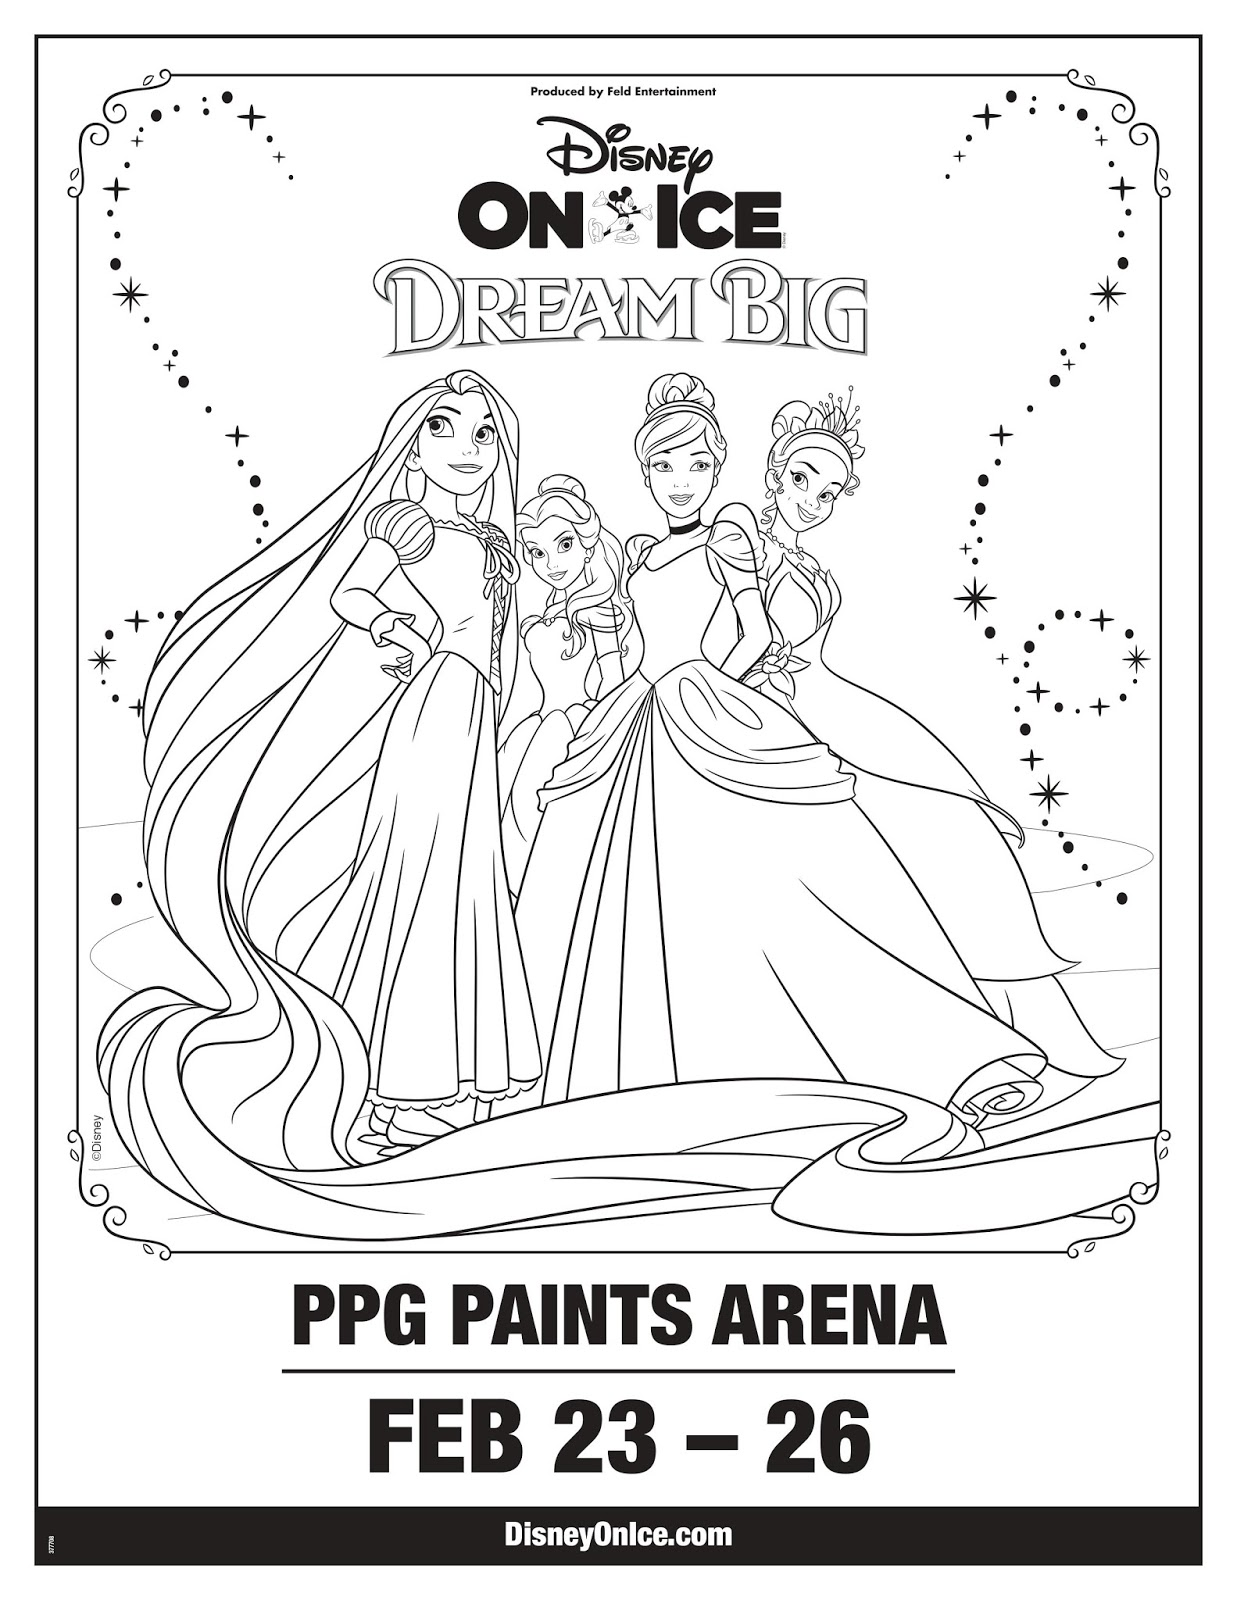 Pgh Momtourage Disney On Ice Dream Big At Ppg Paints Arena